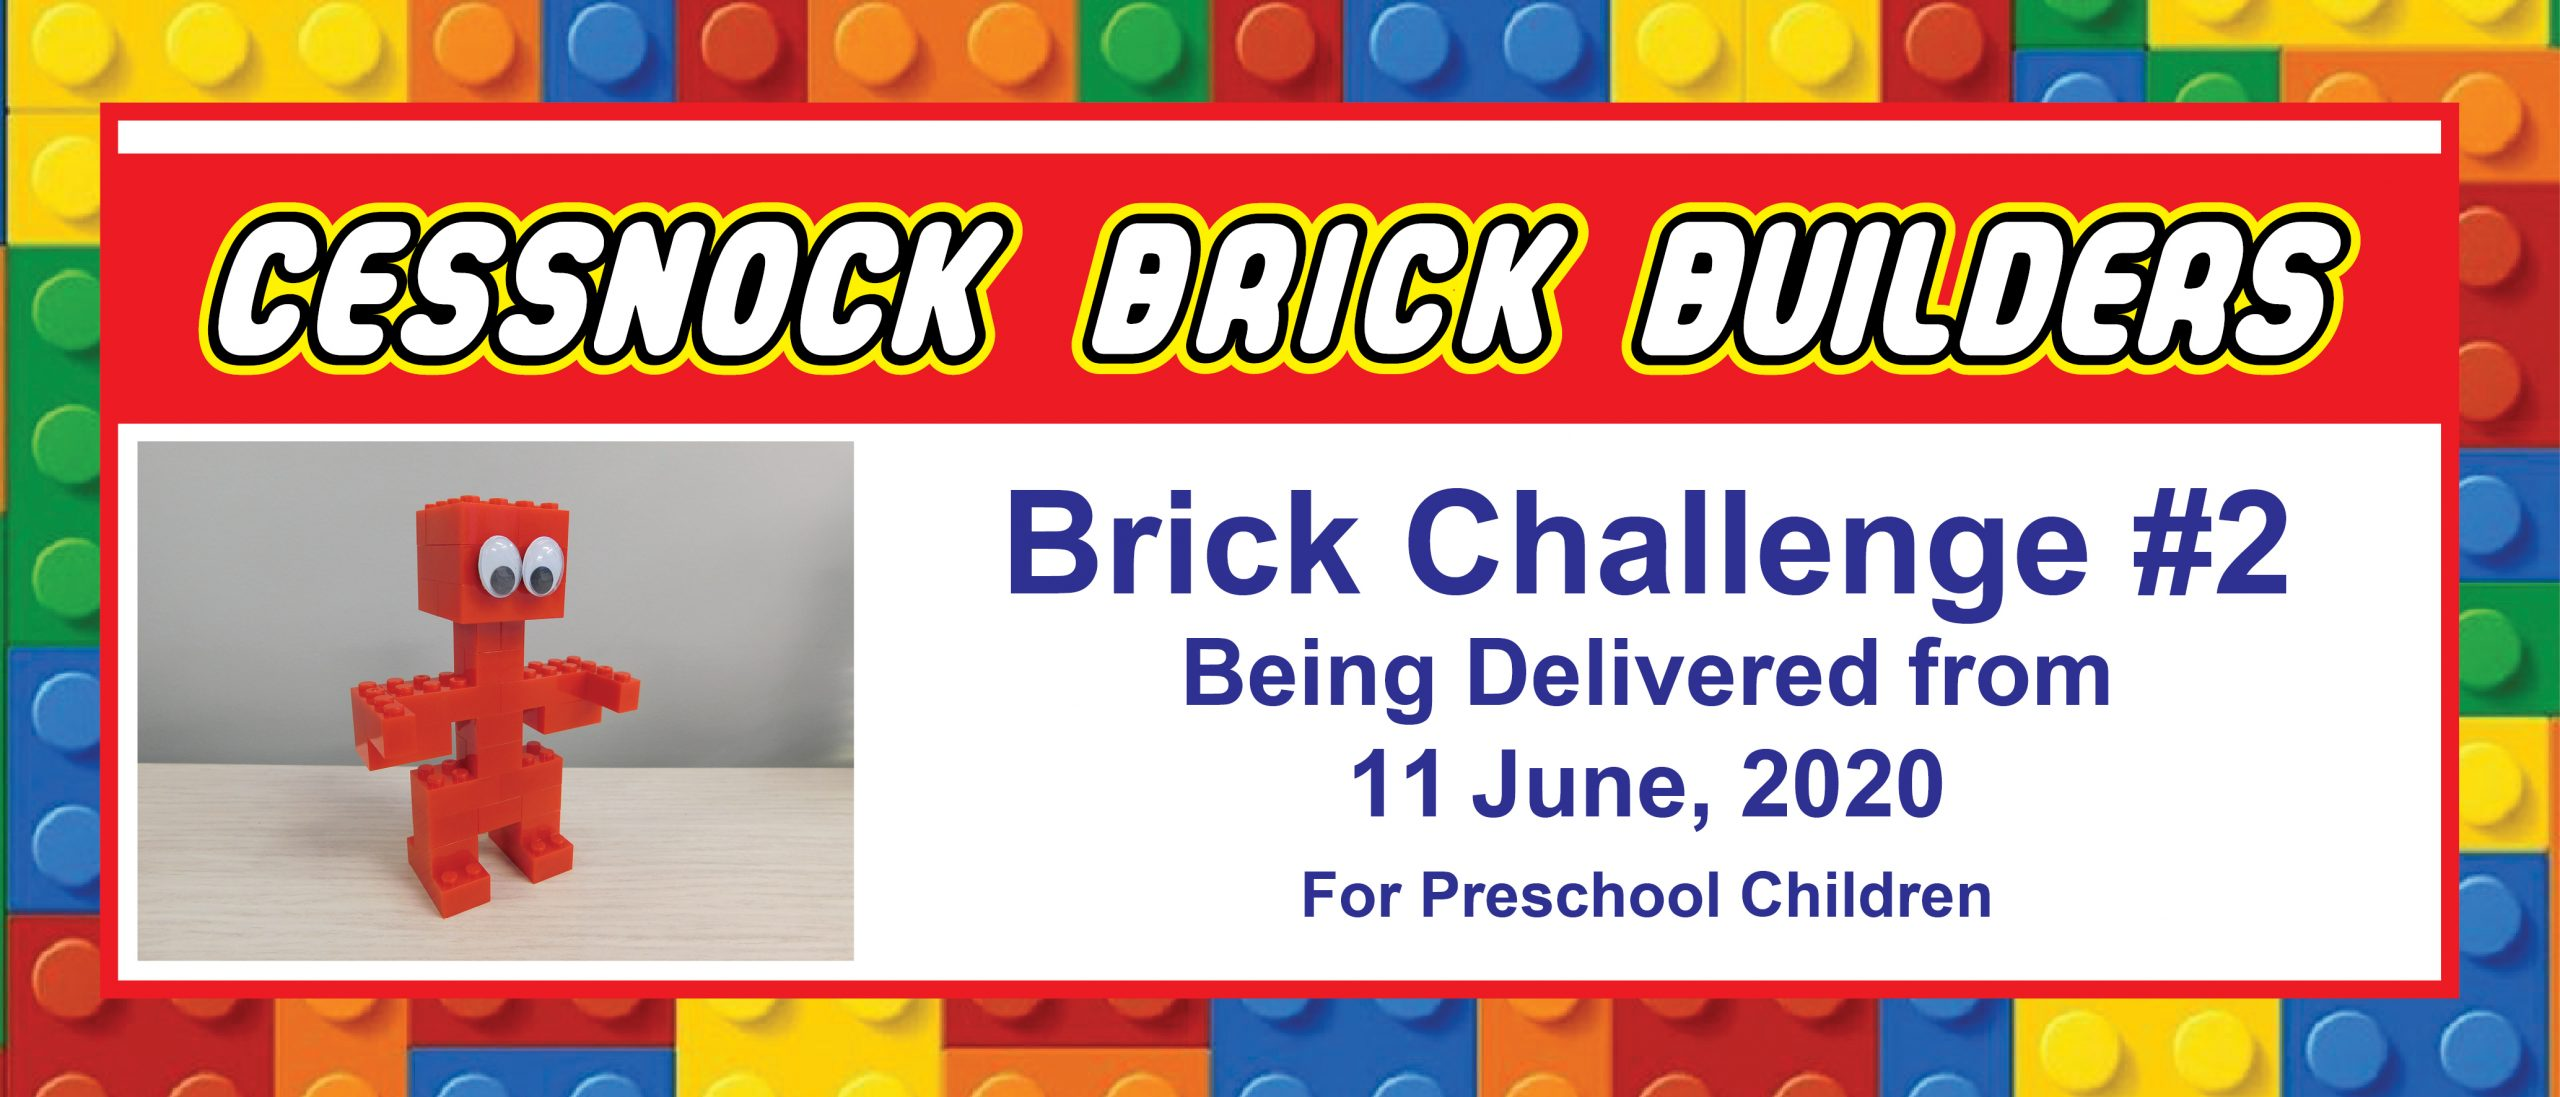 1 Cessnock Brick Builders Challenge 2 11th June EVERYTHING scaled - Home